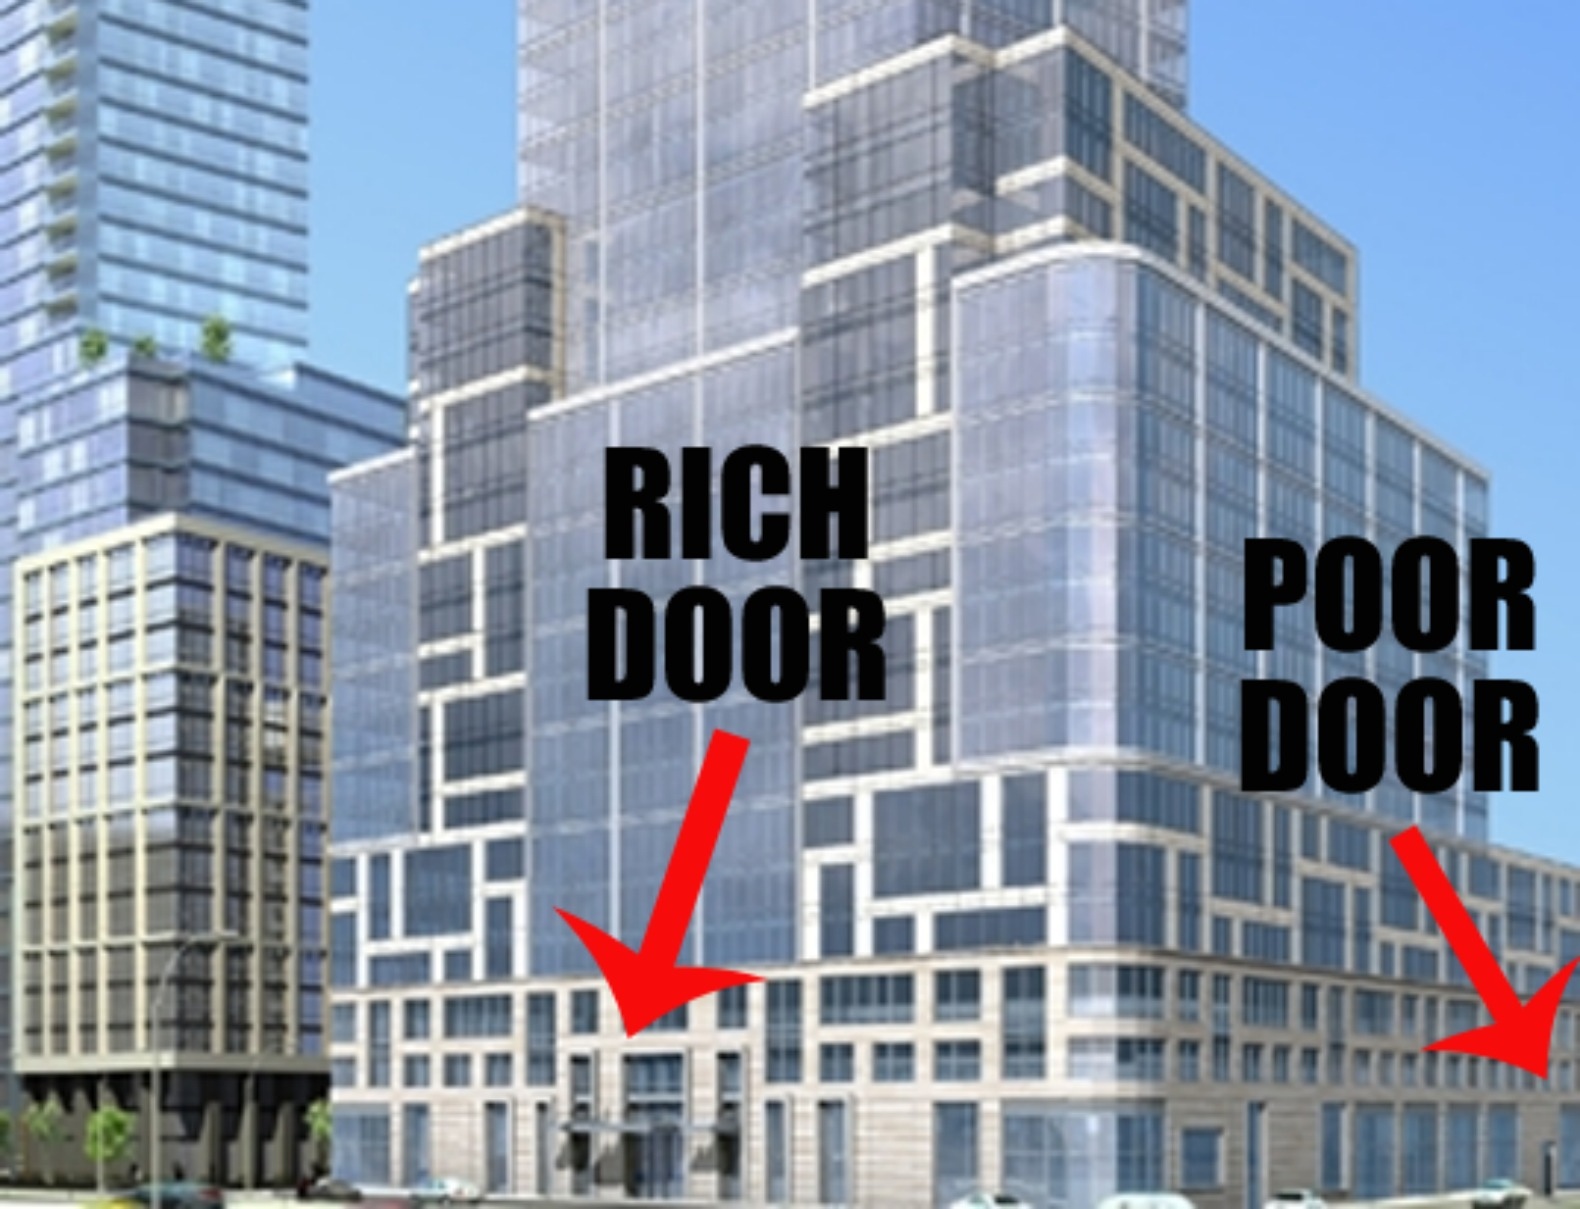 u0027Poor dooru0027 just the beginning of disparate living conditions at 50 Riverside say lower-income residents | Inhabitat - Green Design Innovation ... & Poor dooru0027 just the beginning of disparate living conditions at 50 ... pezcame.com